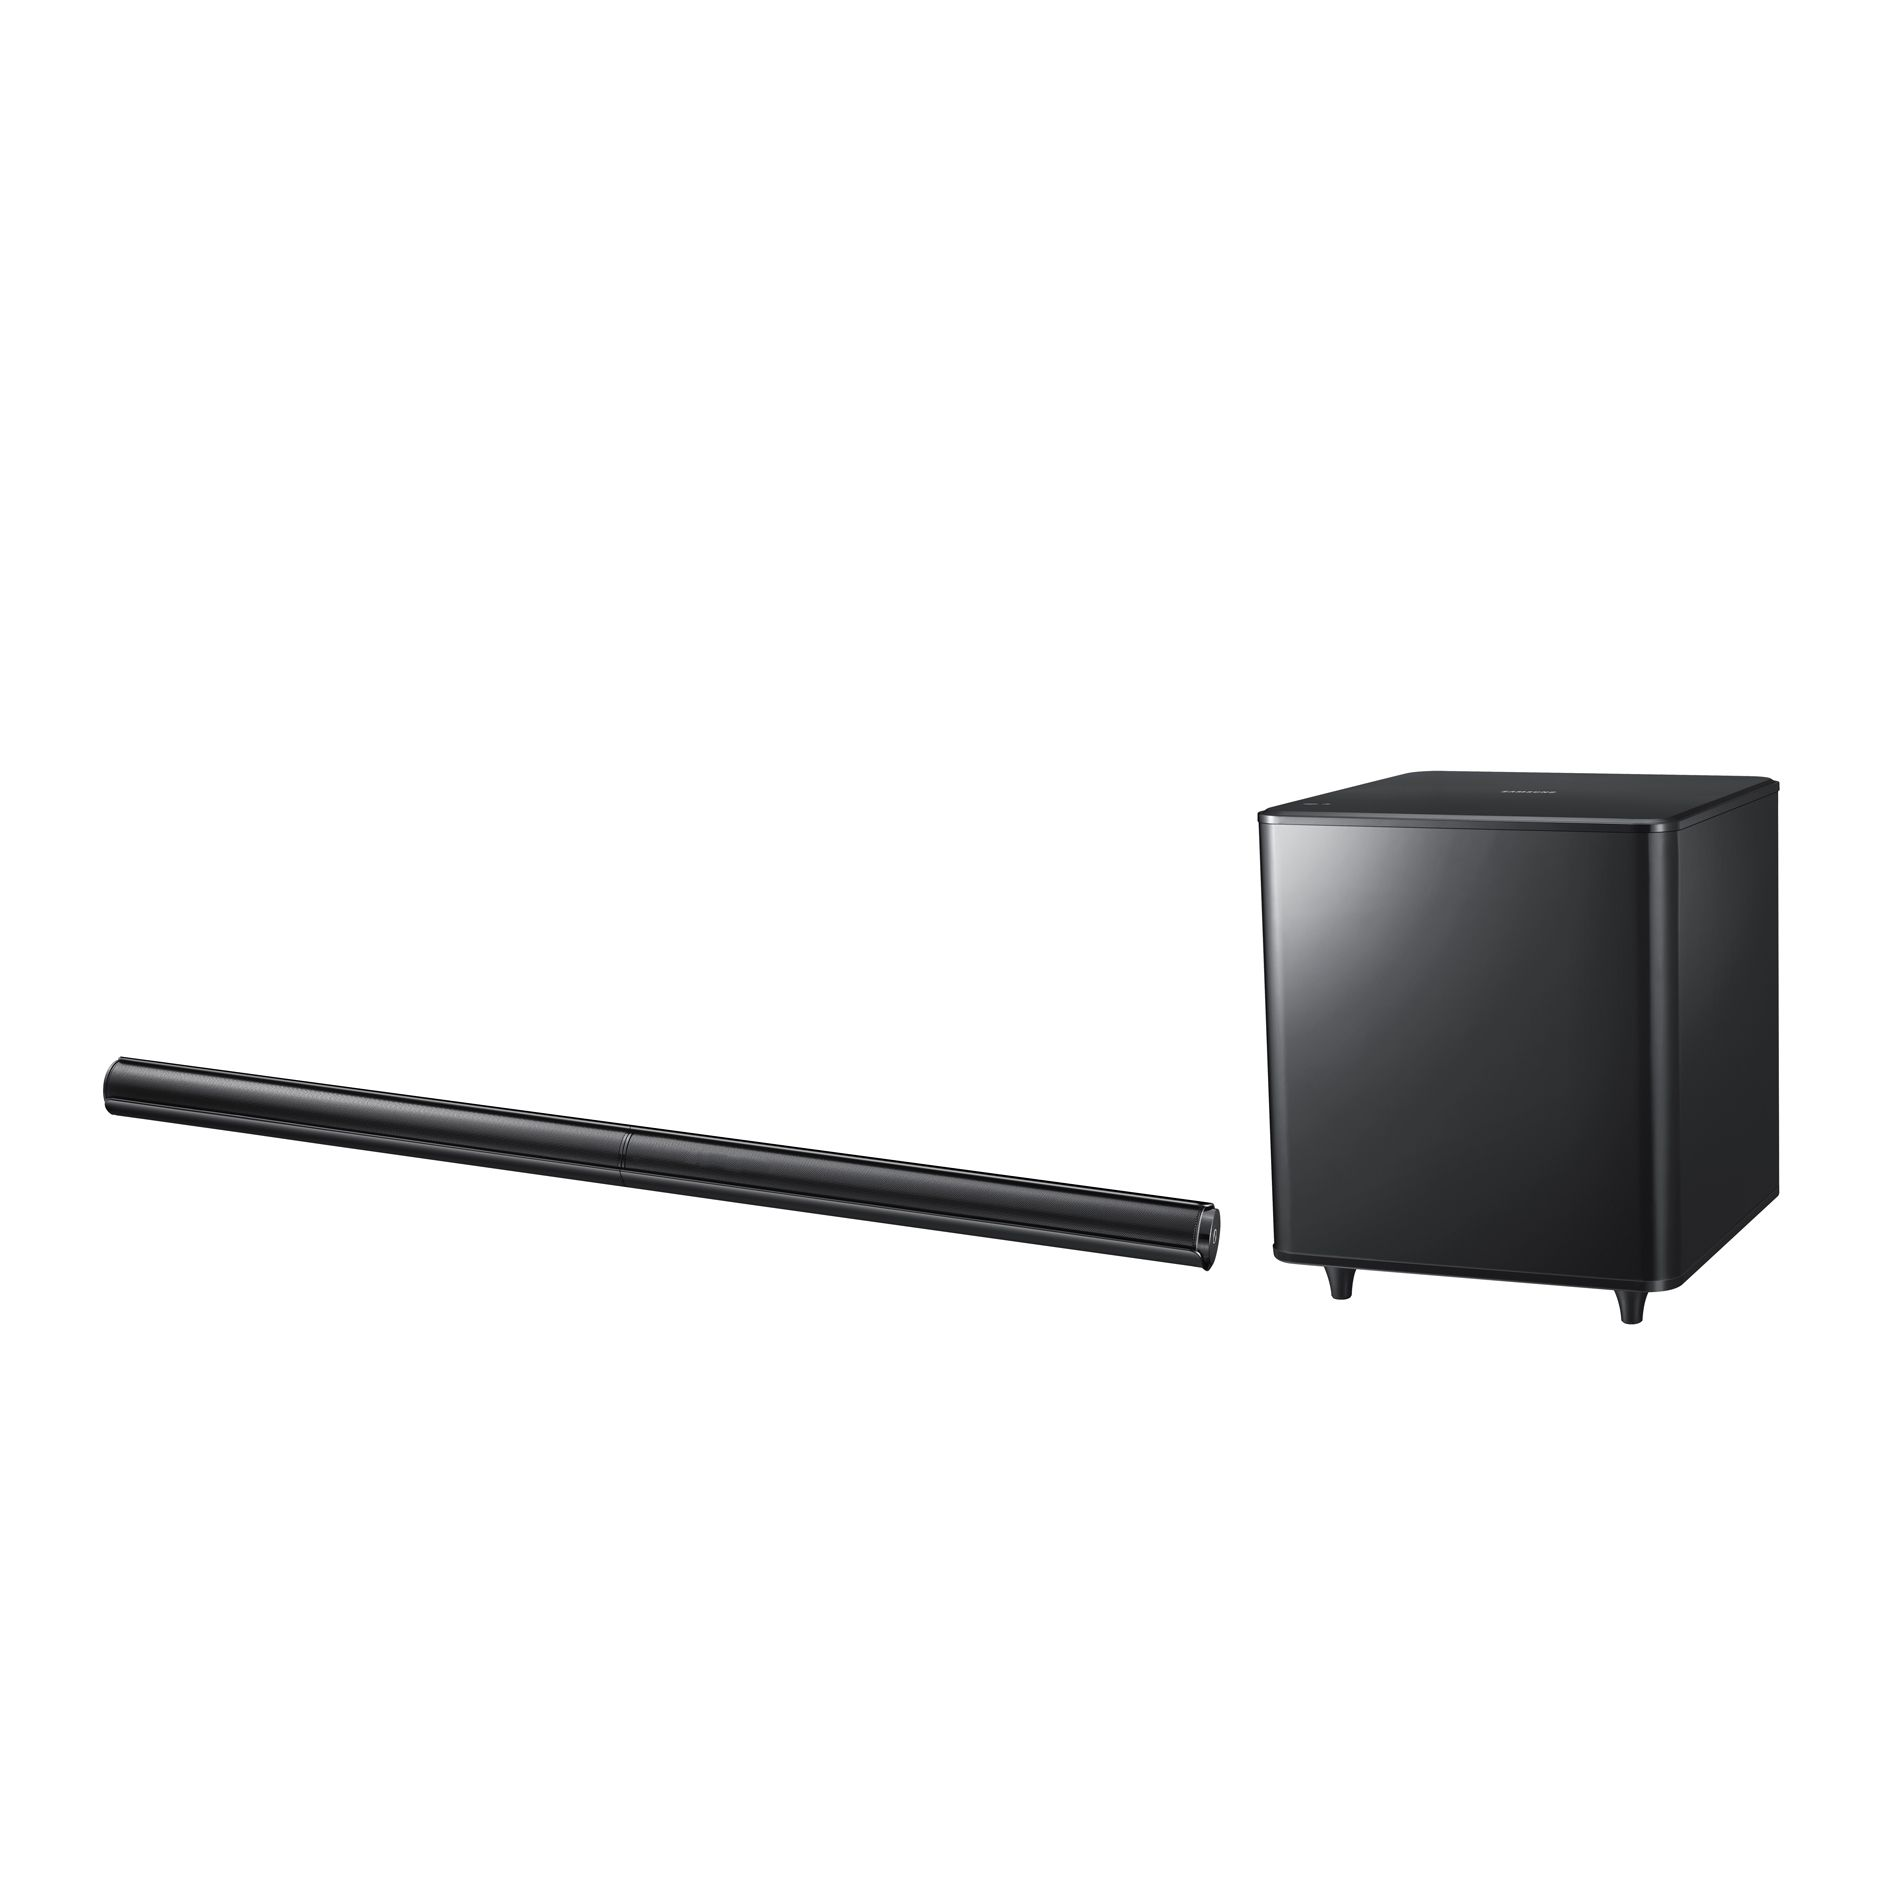 "Samsung 46"" Convertible Sound Bar with Wireless Subwoofer HW-E550"